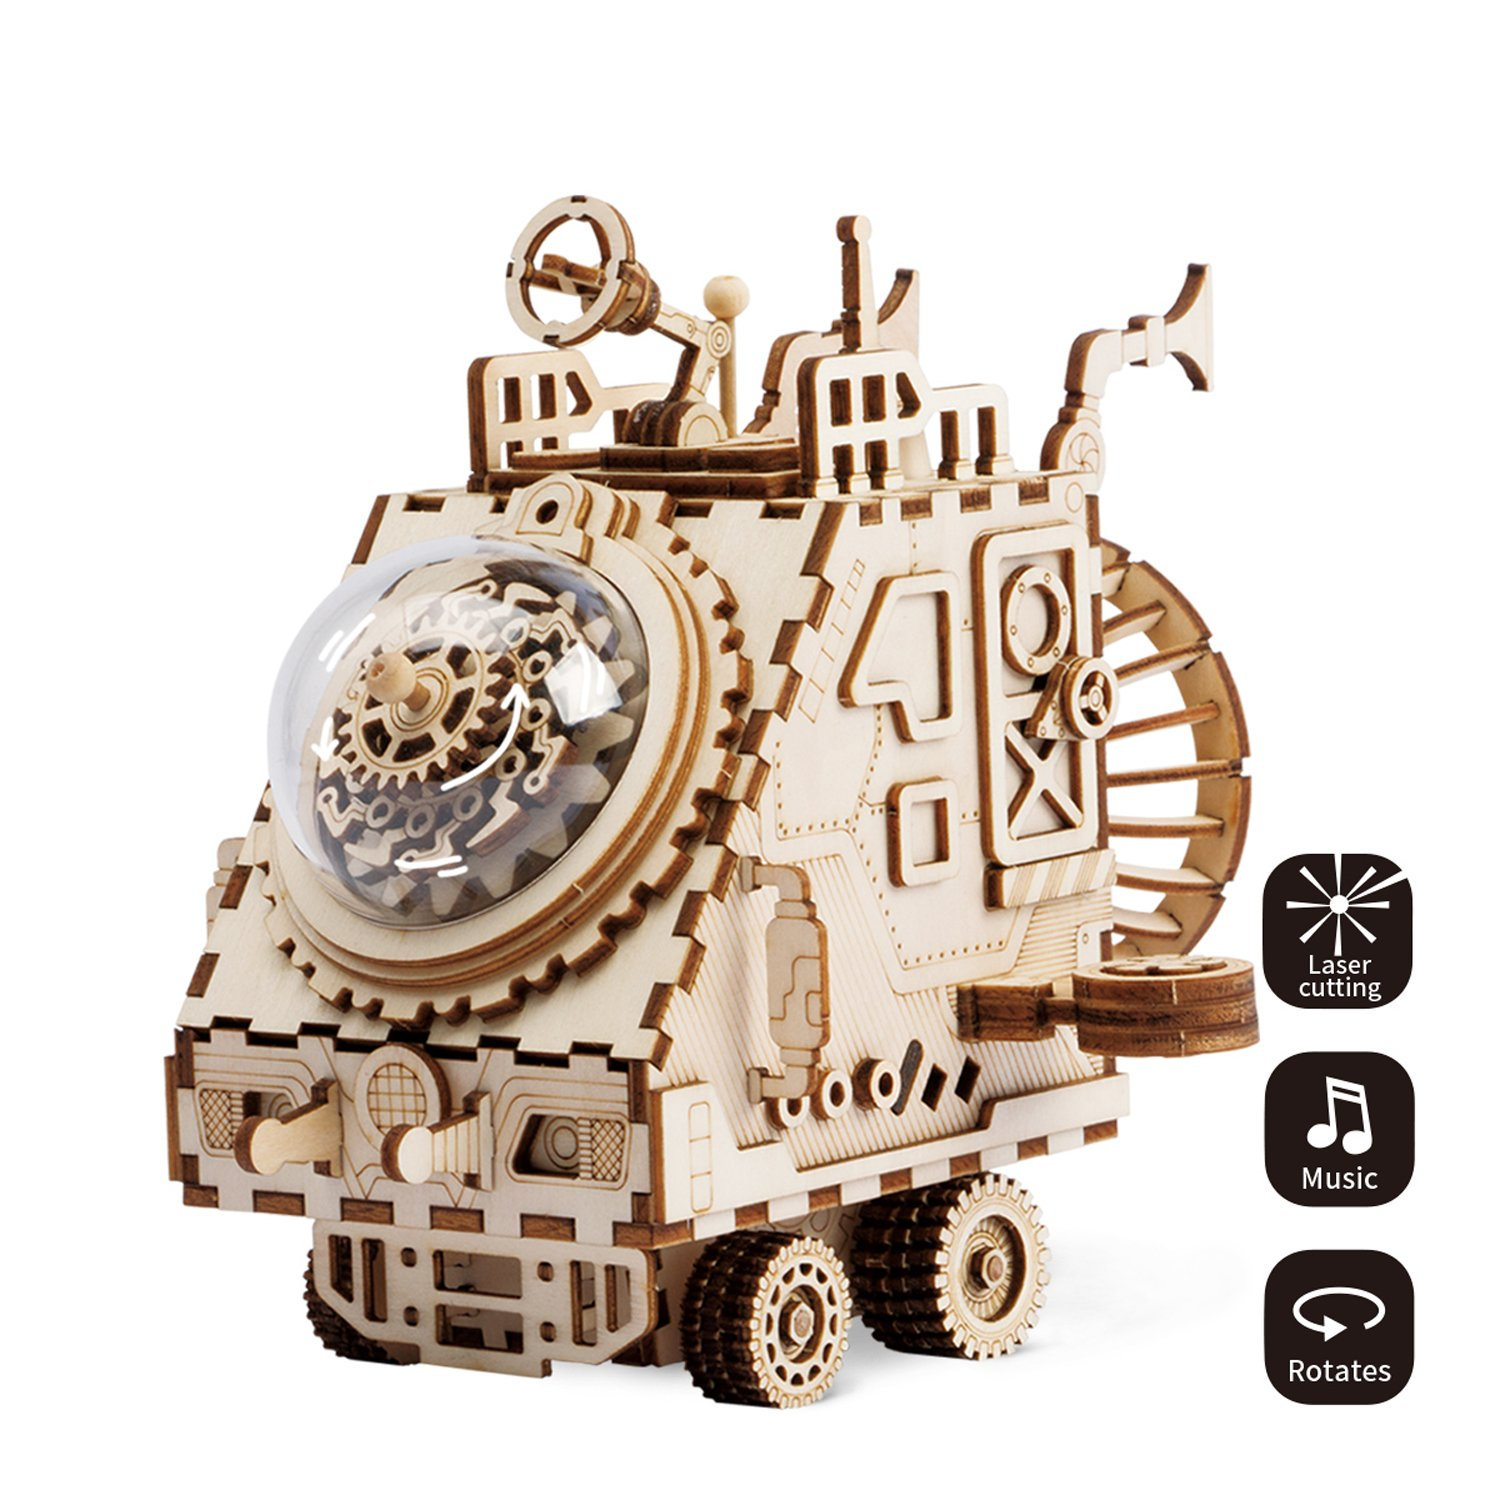 ROBOTIME Laser Cut Wooden Jigsaw Puzzle - Adults Model Kits - DIY Punk Music Box - Construction Model Kits Rabbit Toys for 8 Year Old and Up - Creative Birthday Christmas Gifts for Girls